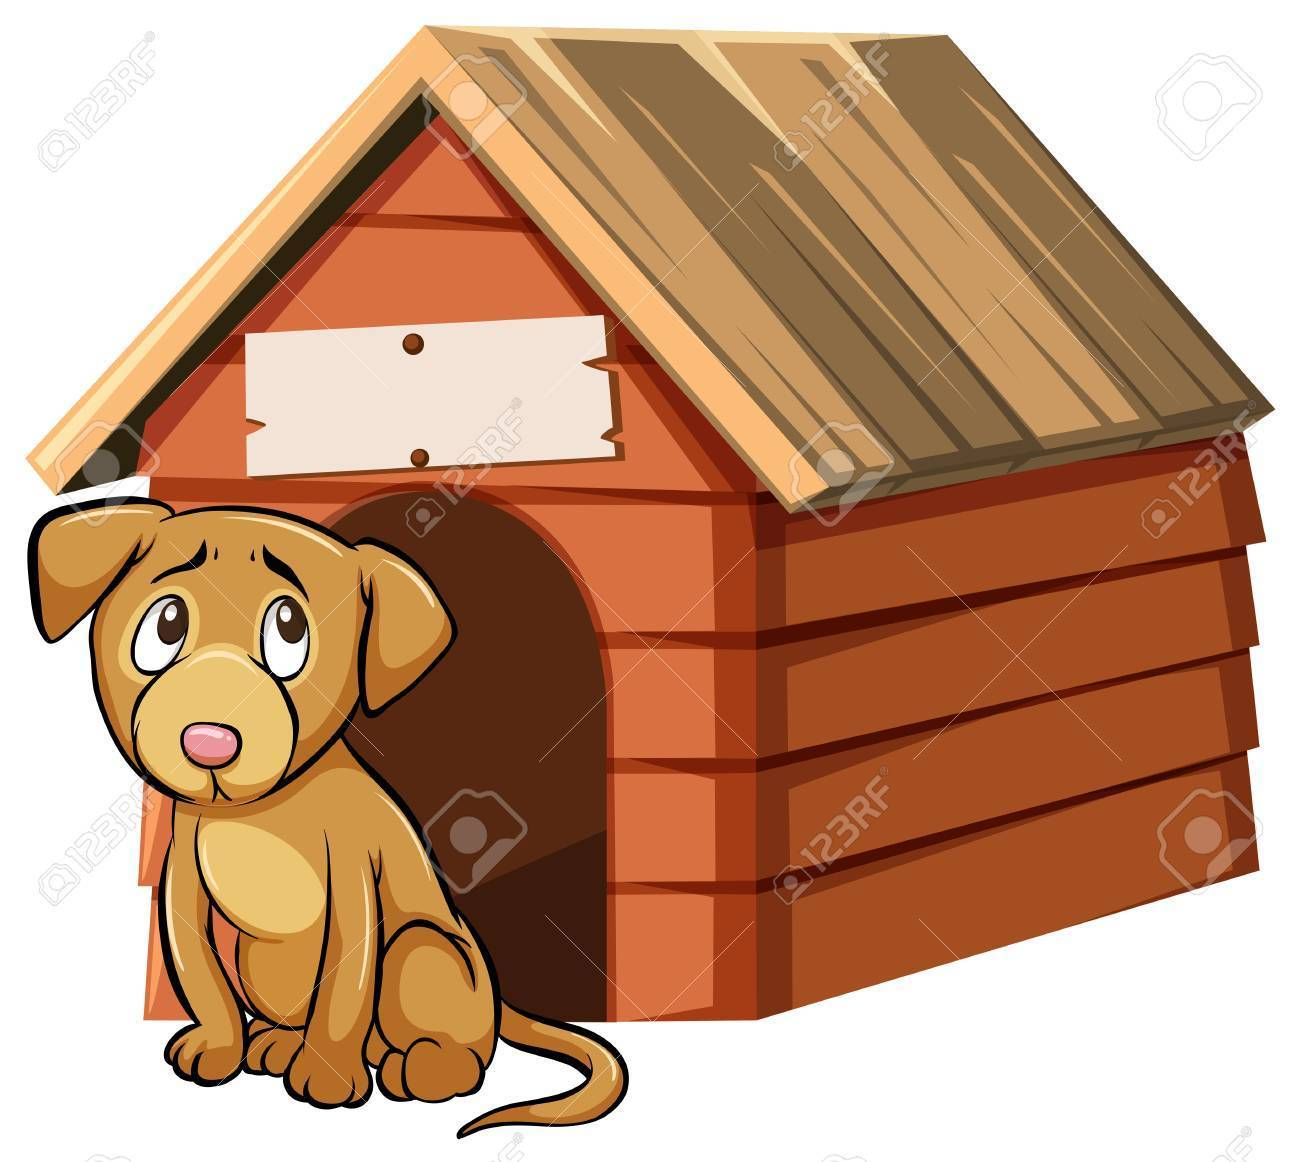 doghouse clipart dog thing